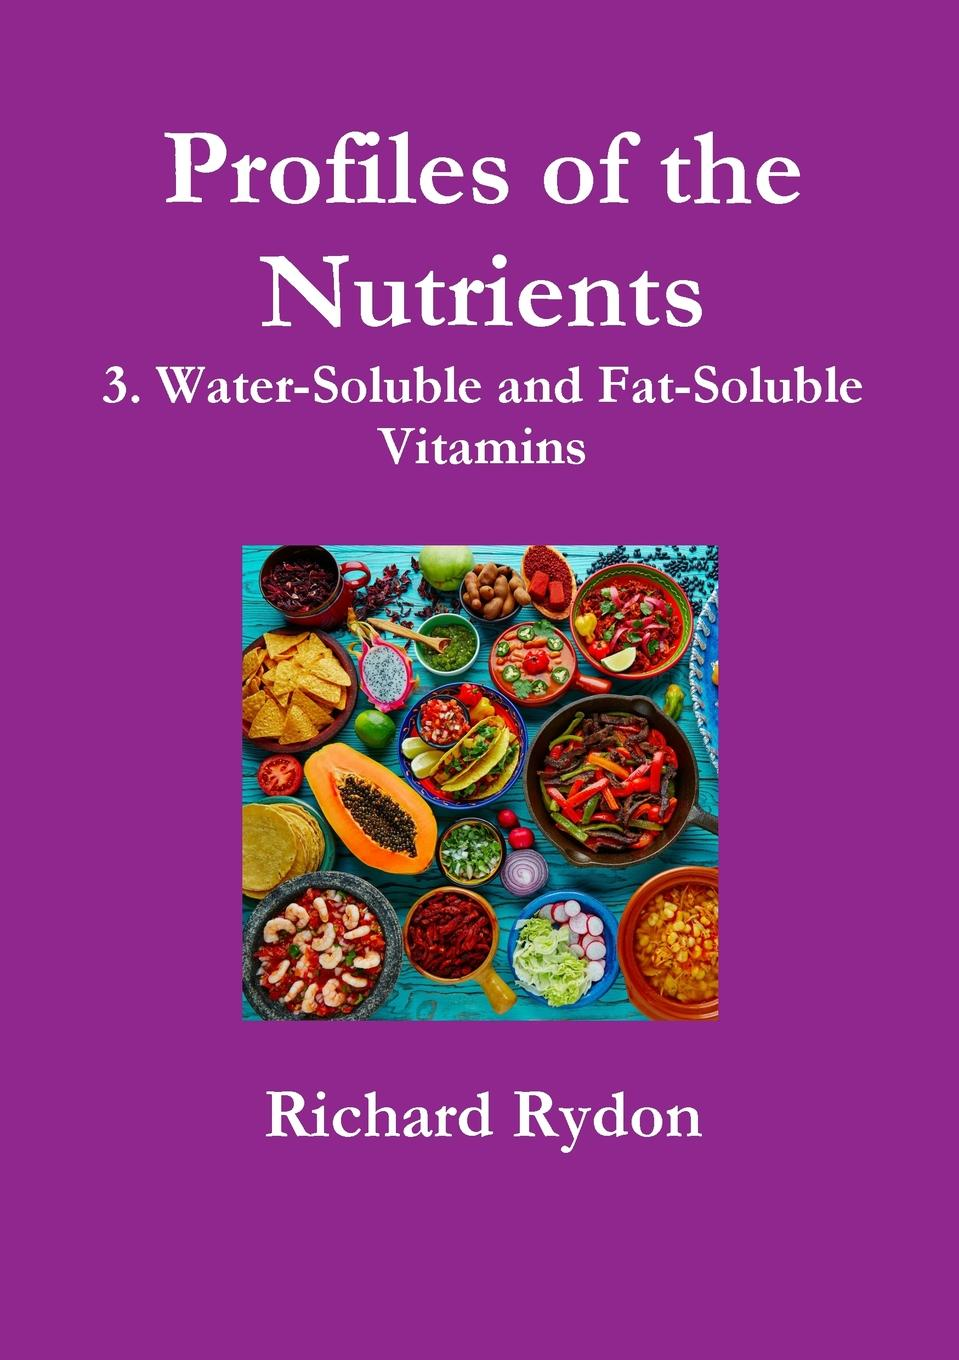 Richard Rydon Profiles of the Nutrients-3. Water-Soluble and Fat-Soluble Vitamins линзы rp rydon laser blue